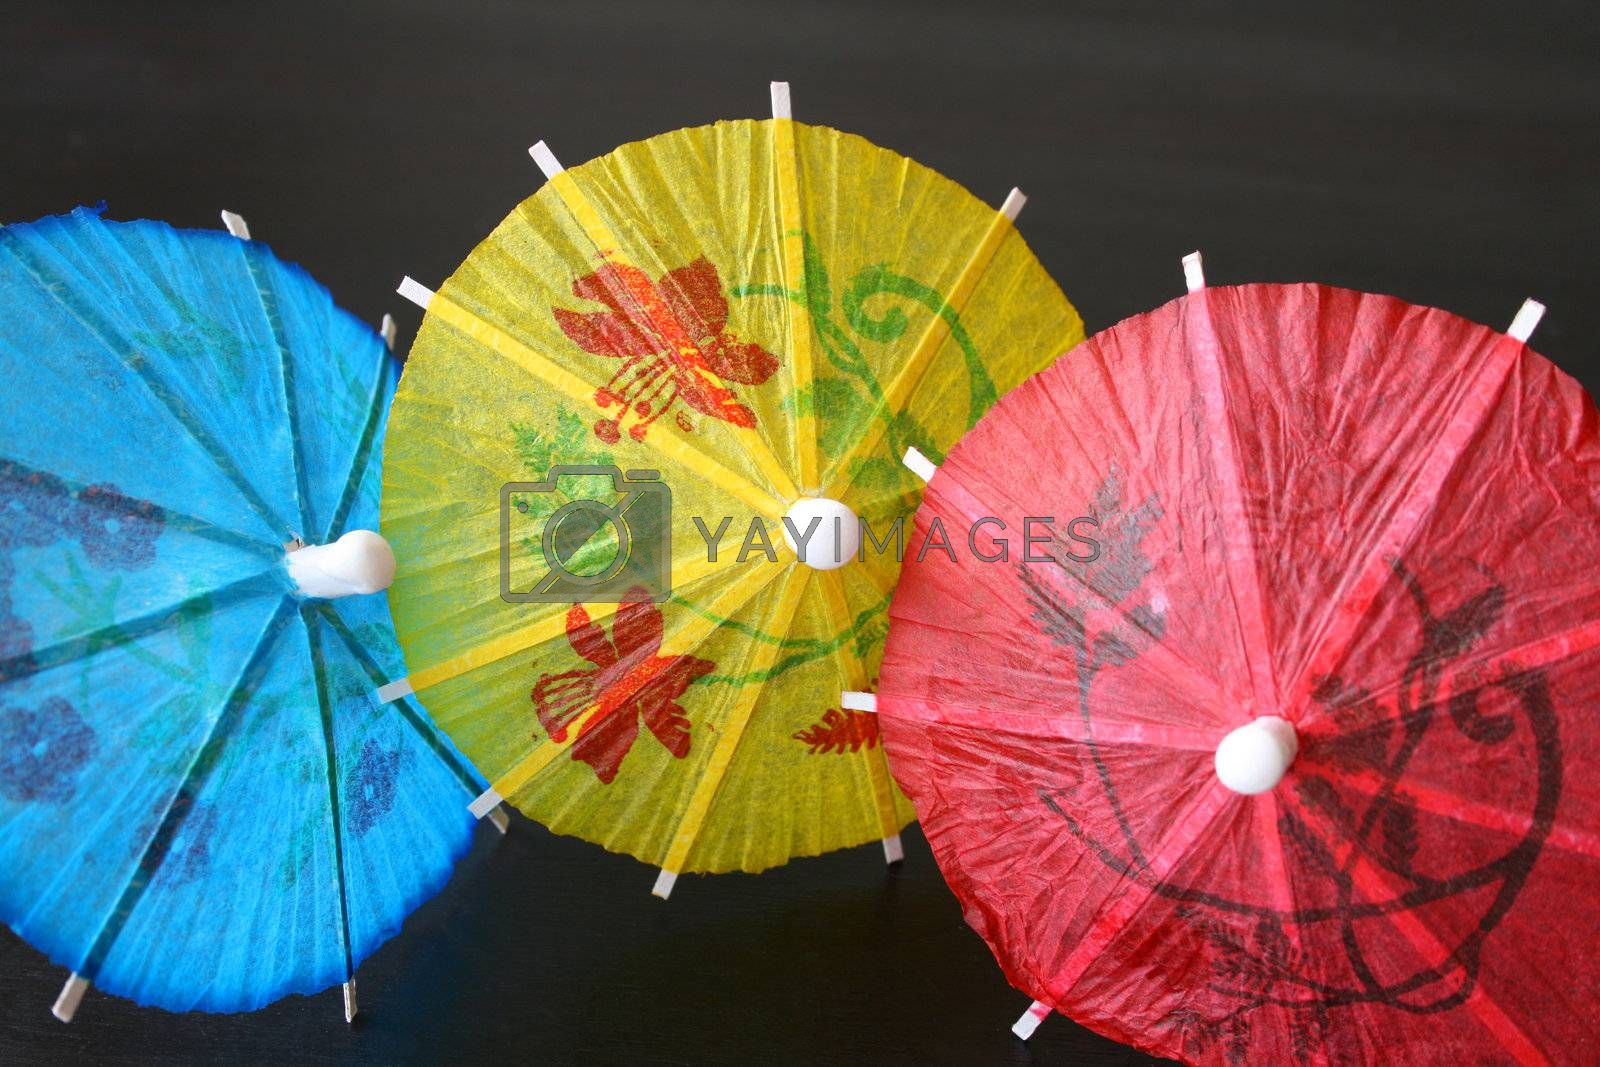 Blue, yellow and red Cocktail Umbrellas on a dark surface